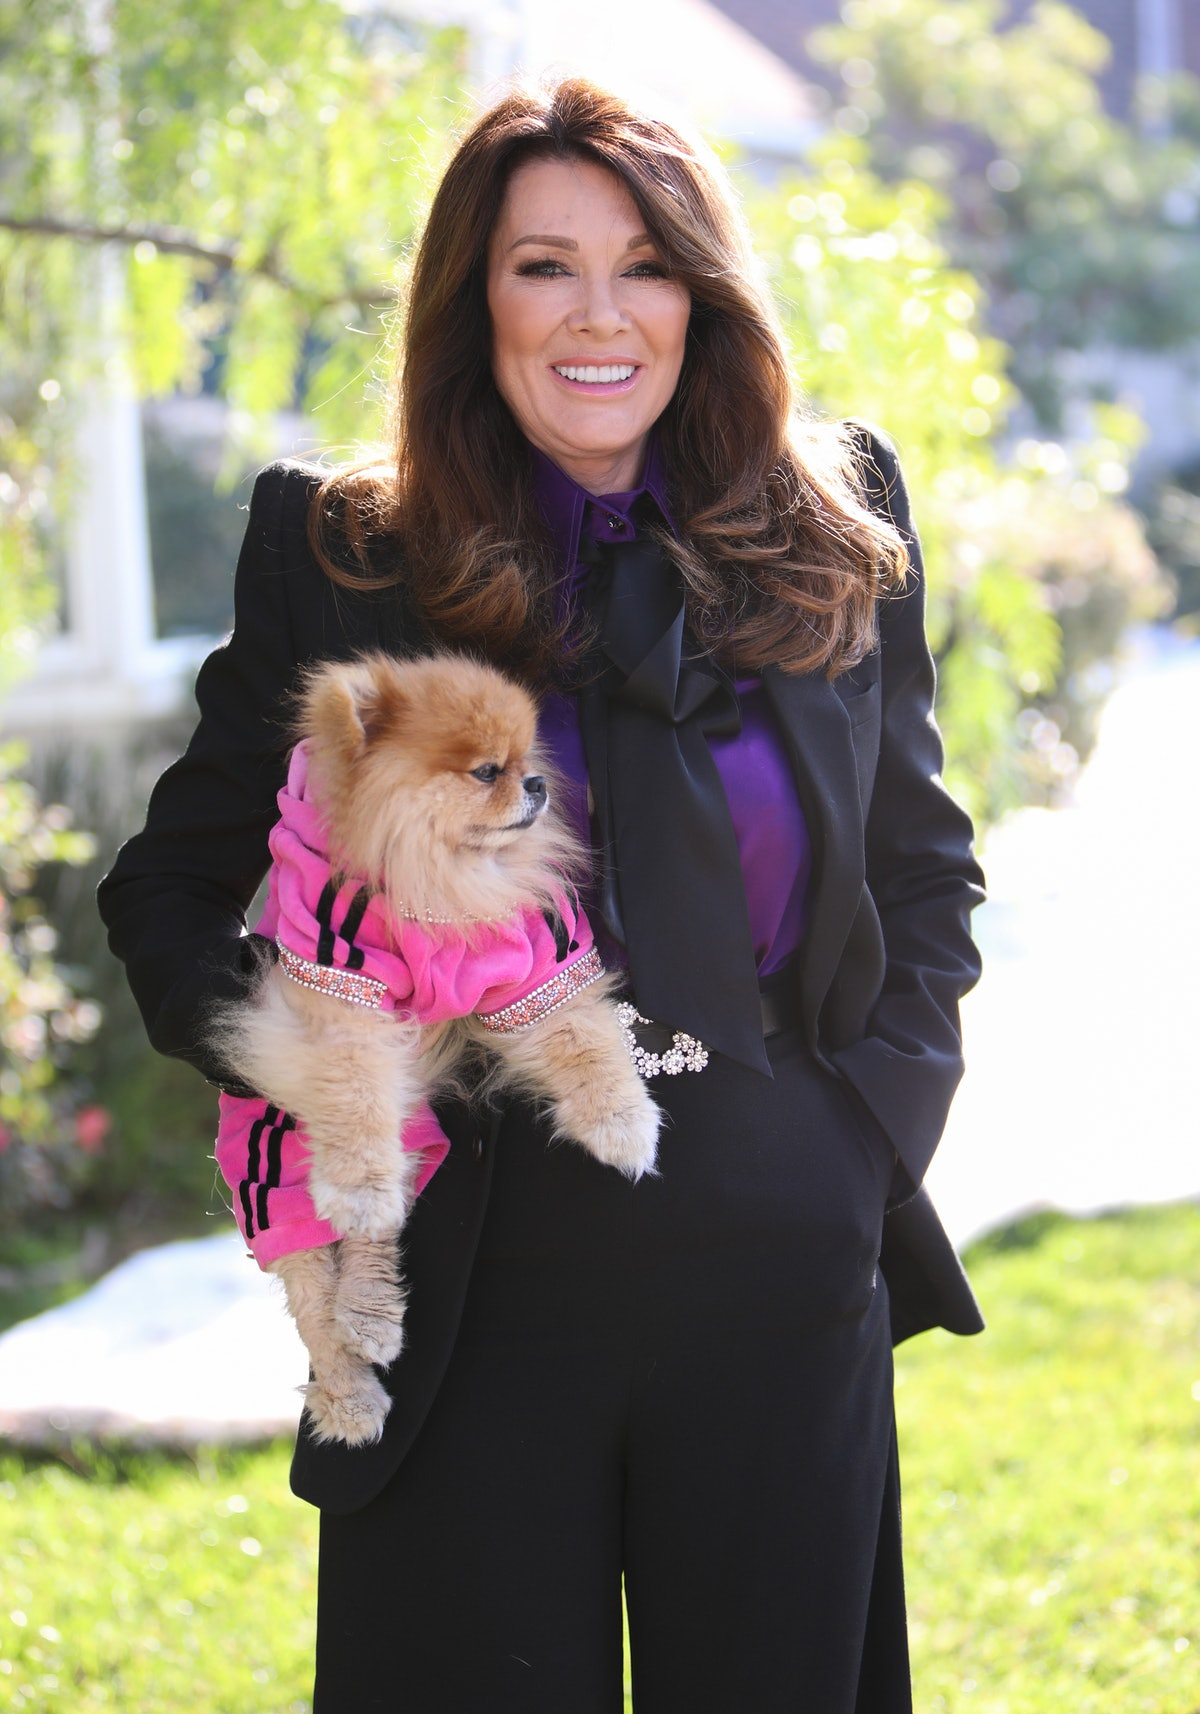 """UNIVERSAL CITY, CALIFORNIA - JANUARY 14: Reality TV Personality Lisa Vanderpump visits Hallmark Channel's """"Home & Family"""" at Universal Studios Hollywood on January 14, 2020 in Universal City, California. (Photo by Paul Archuleta/Getty Images)"""